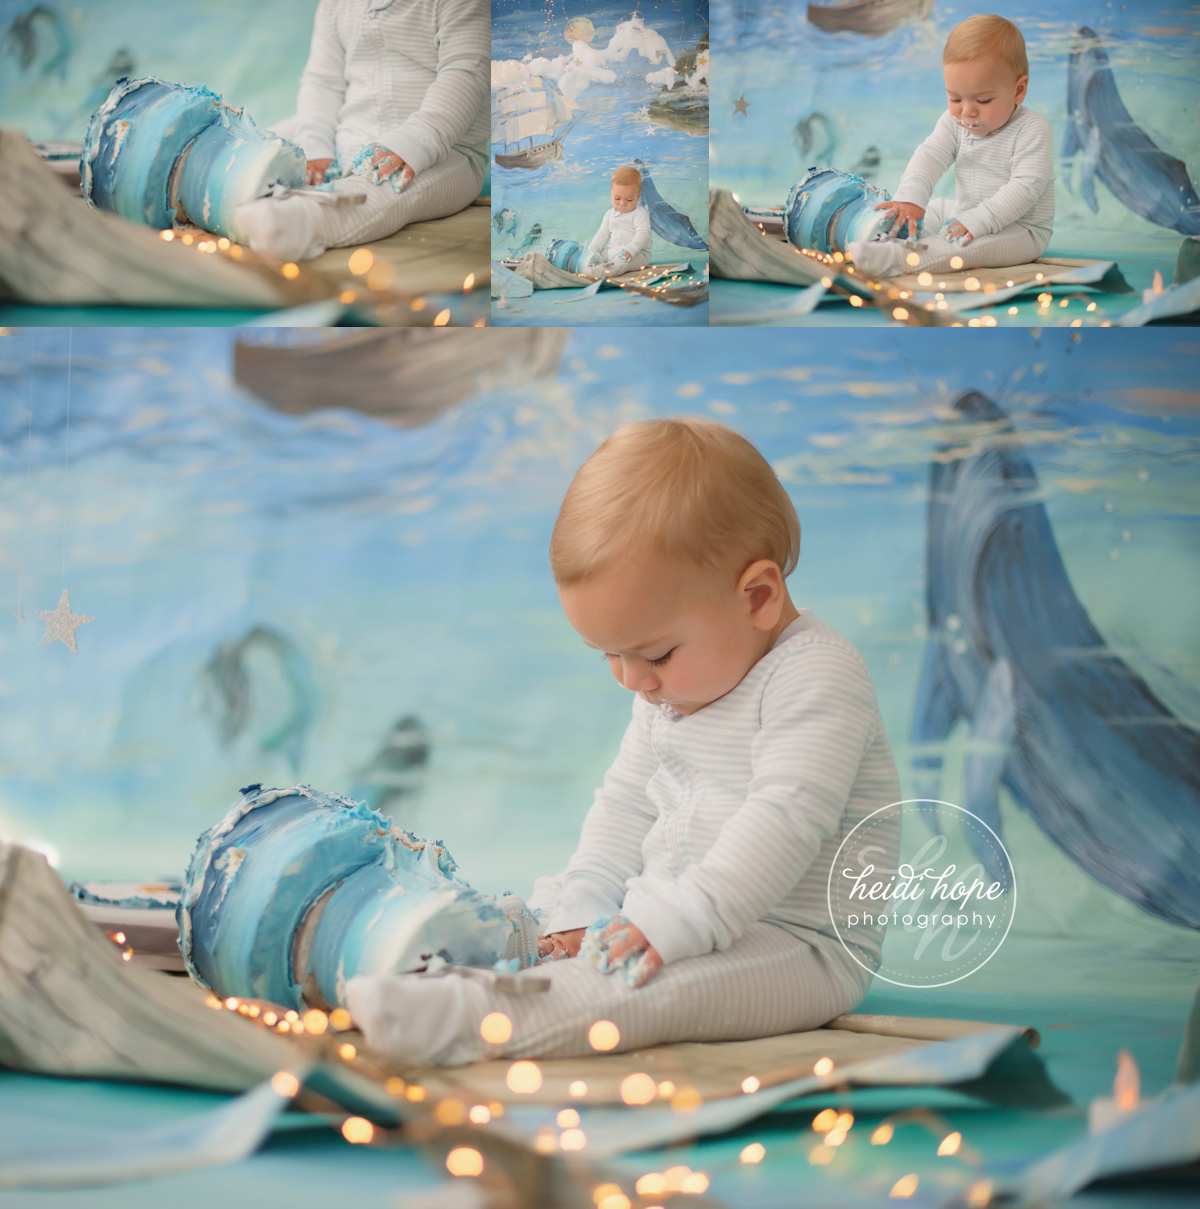 land of nod nautical peter pan magical background first birthday cakesmash01 (10)